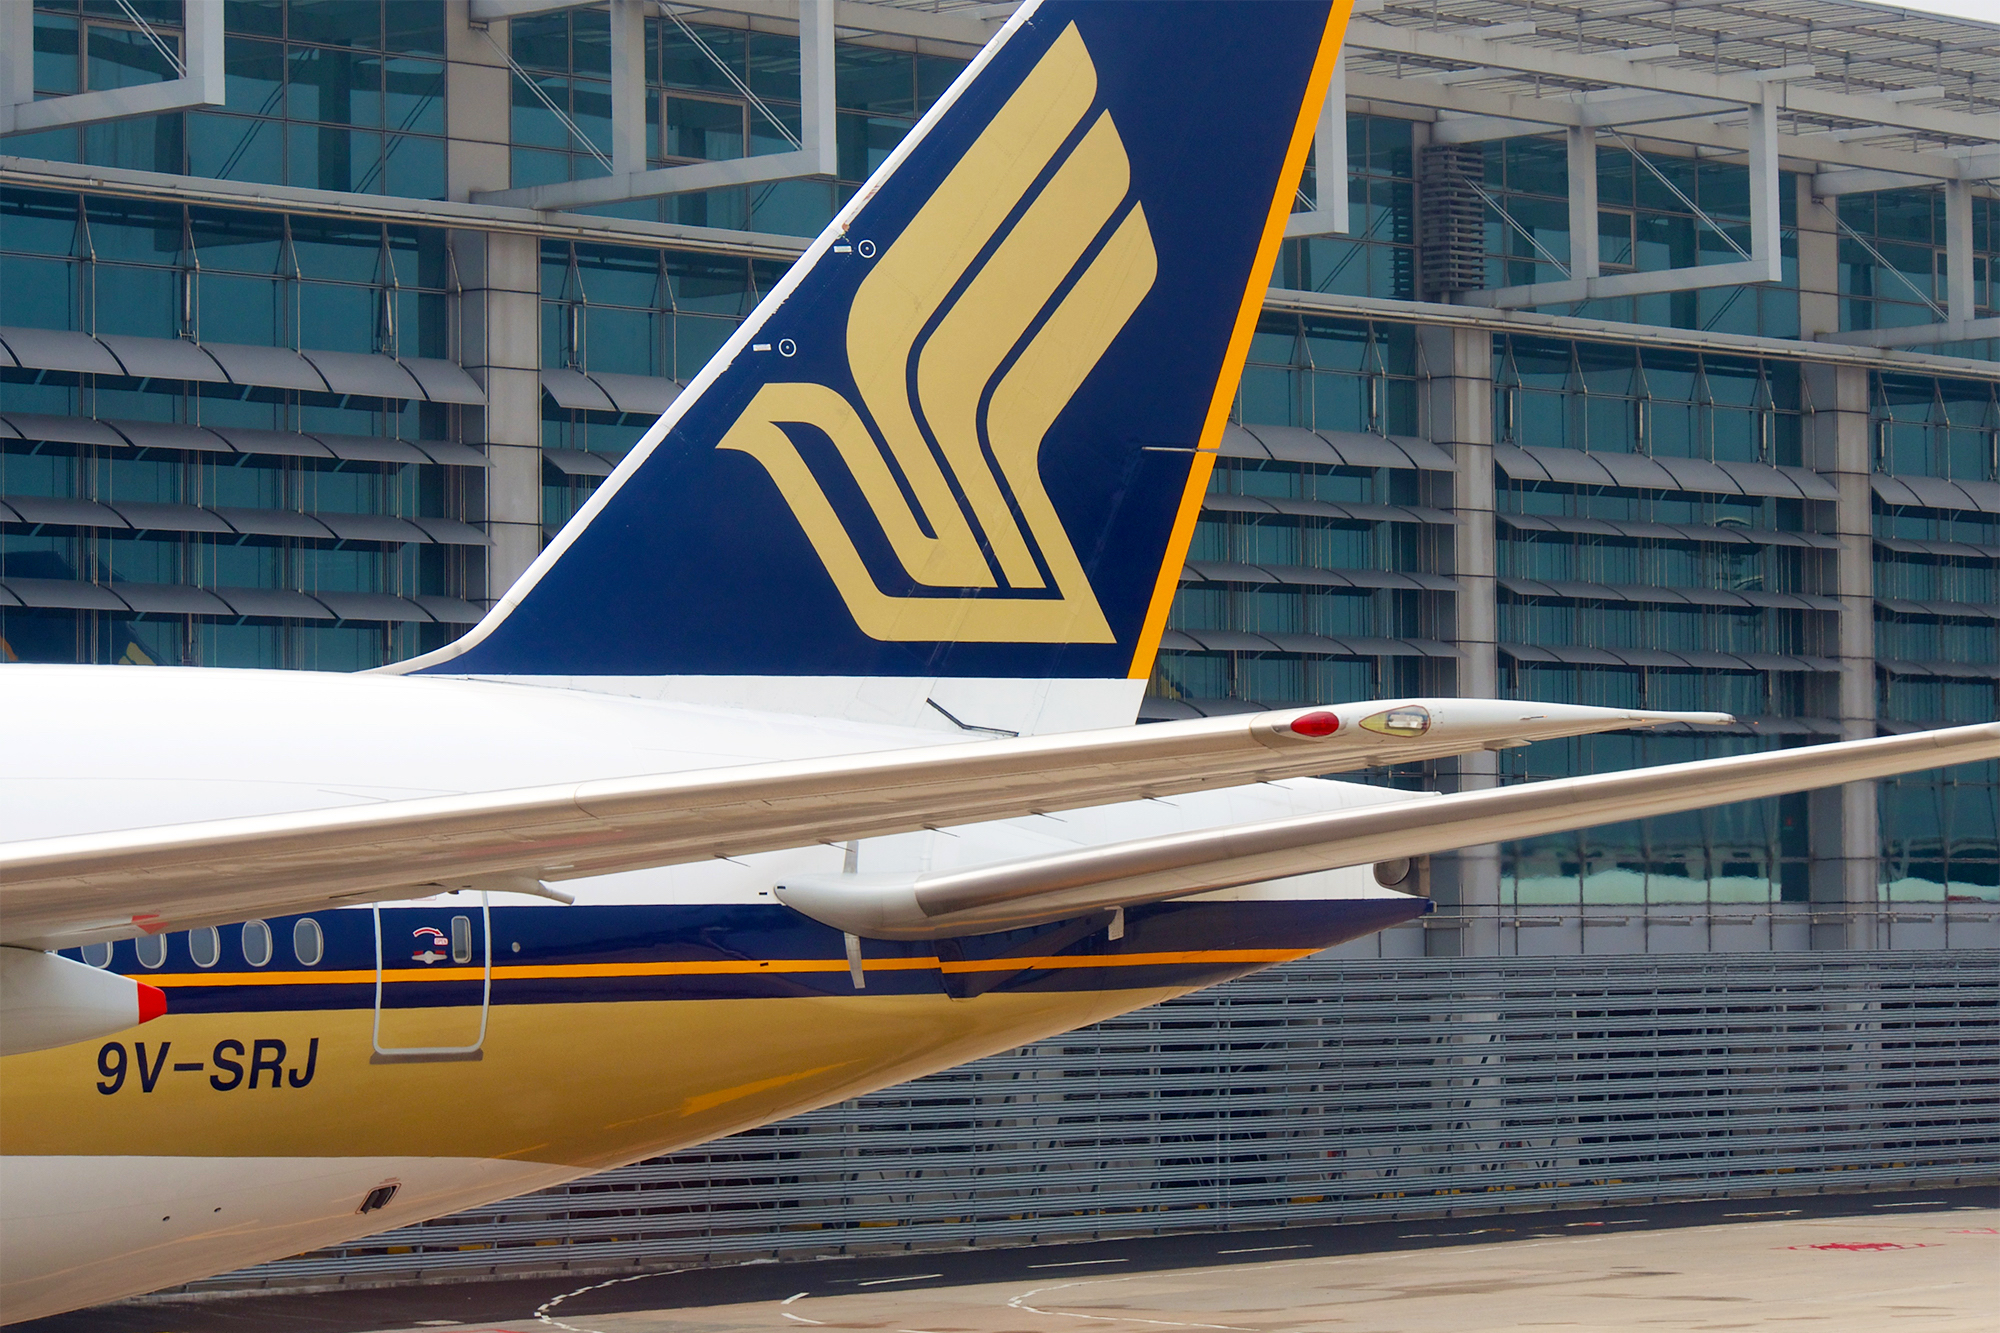 Singapore Airlines Fleet: September 2019